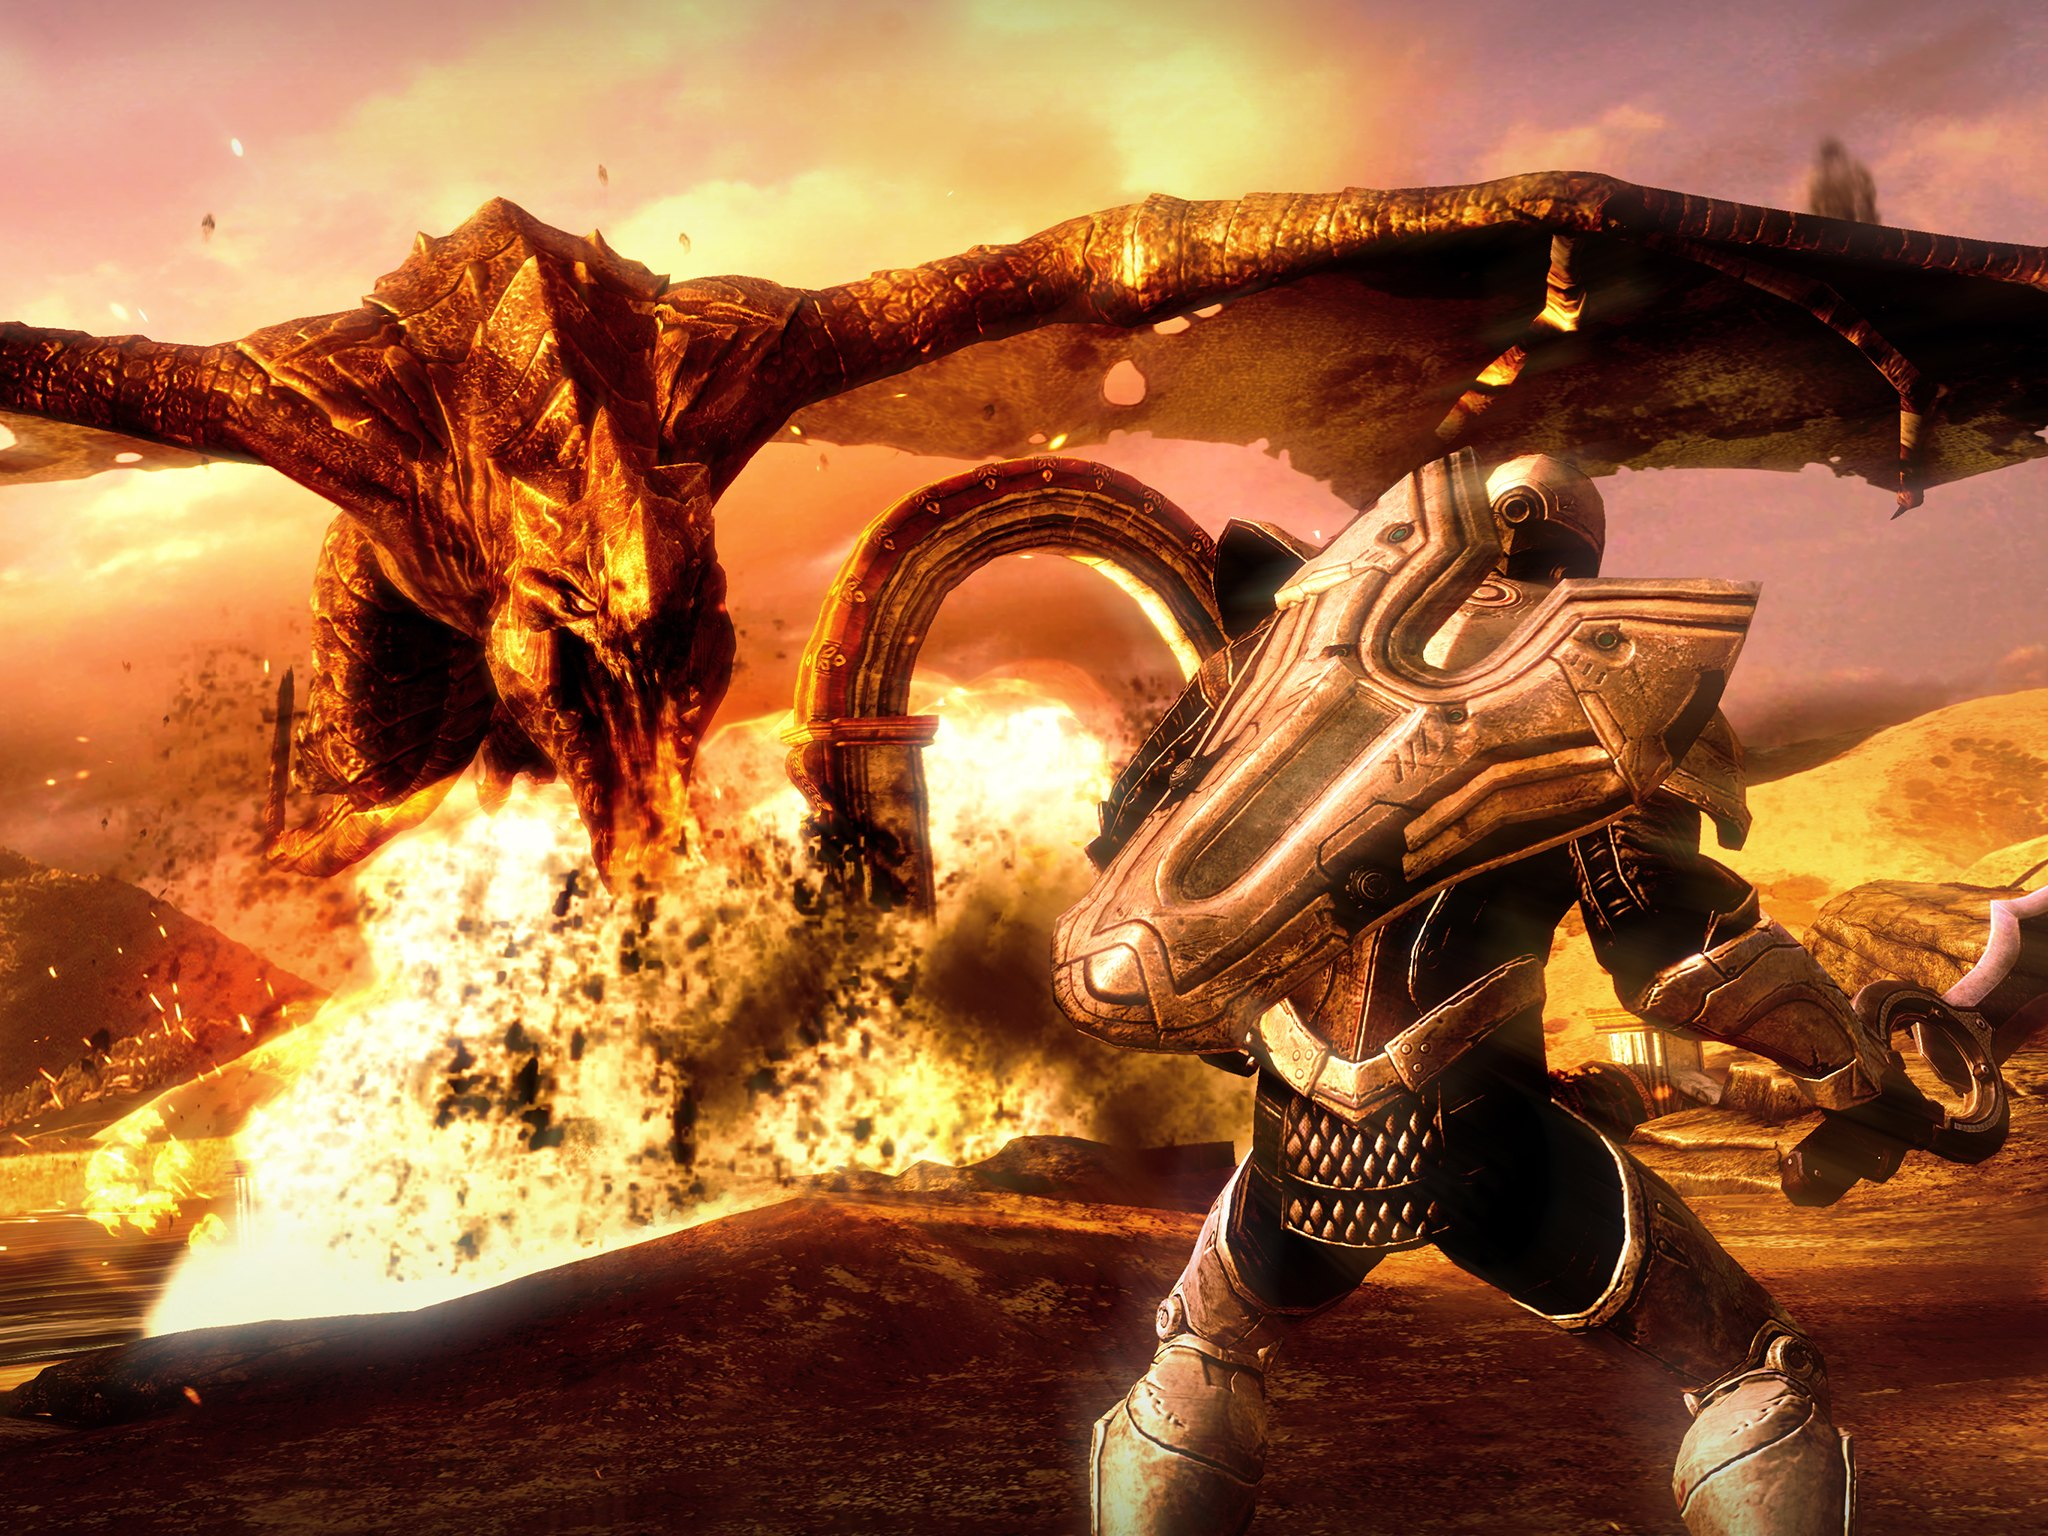 Sa 3d Name Wallpaper Infinity Blade 3 Getting Competitive Aegis Tournaments